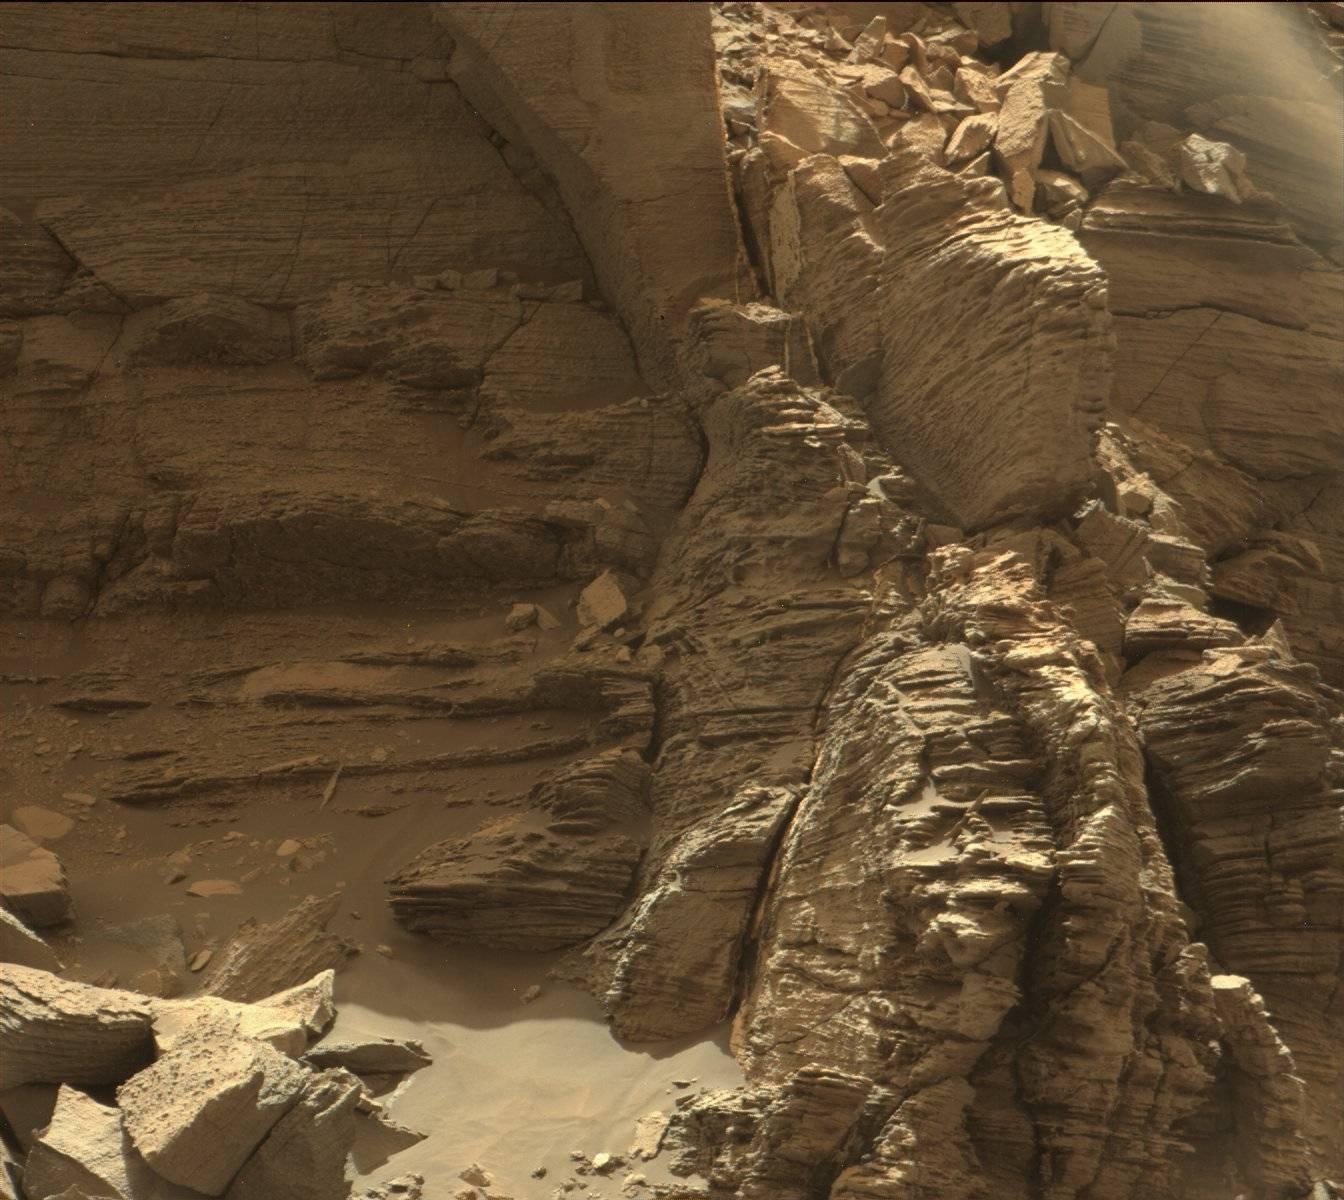 rock on mars by rover - photo #8